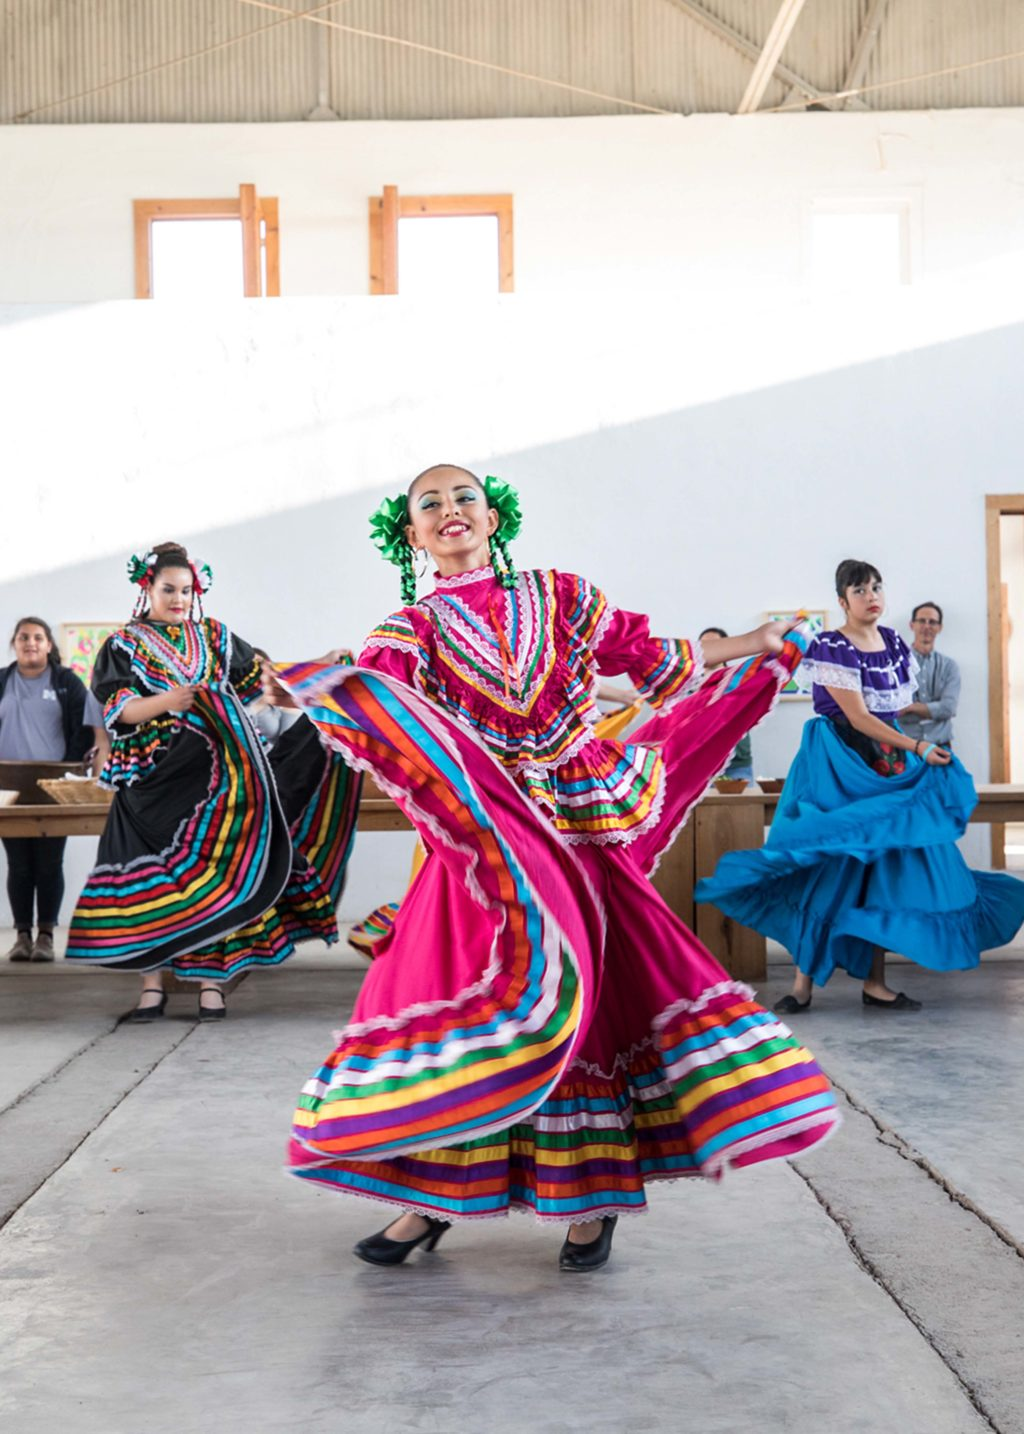 Marfa High School's Ballet Folklórico Aztlán performing during The Chinati Foundation's Annual Community Day